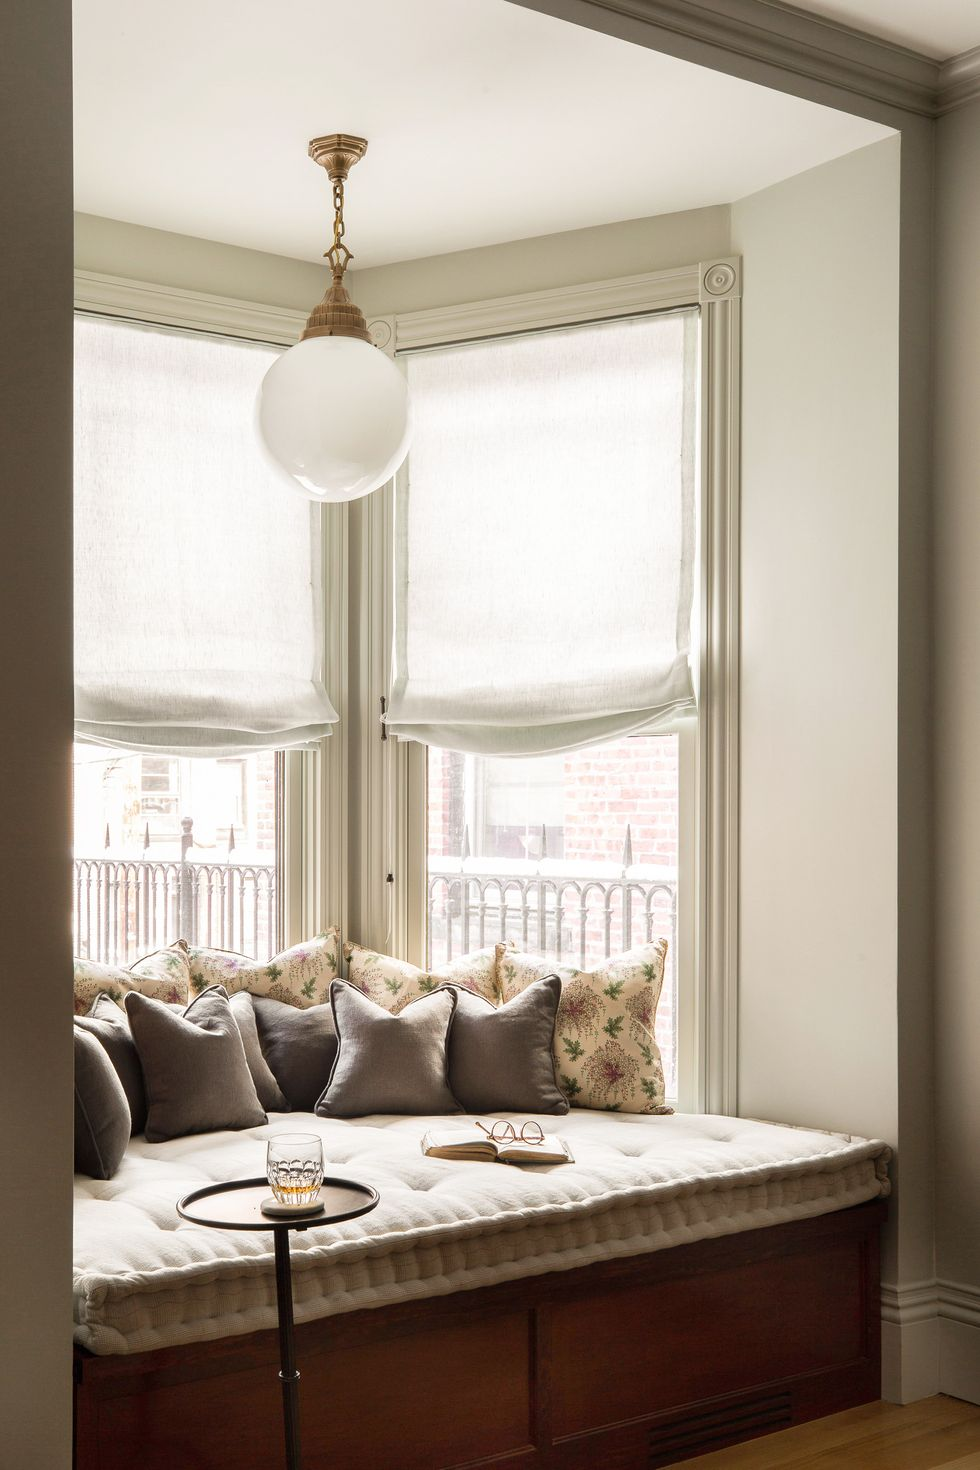 a bay windowsill turned into a comfortable seating for reading or having meals plus additional storage inside